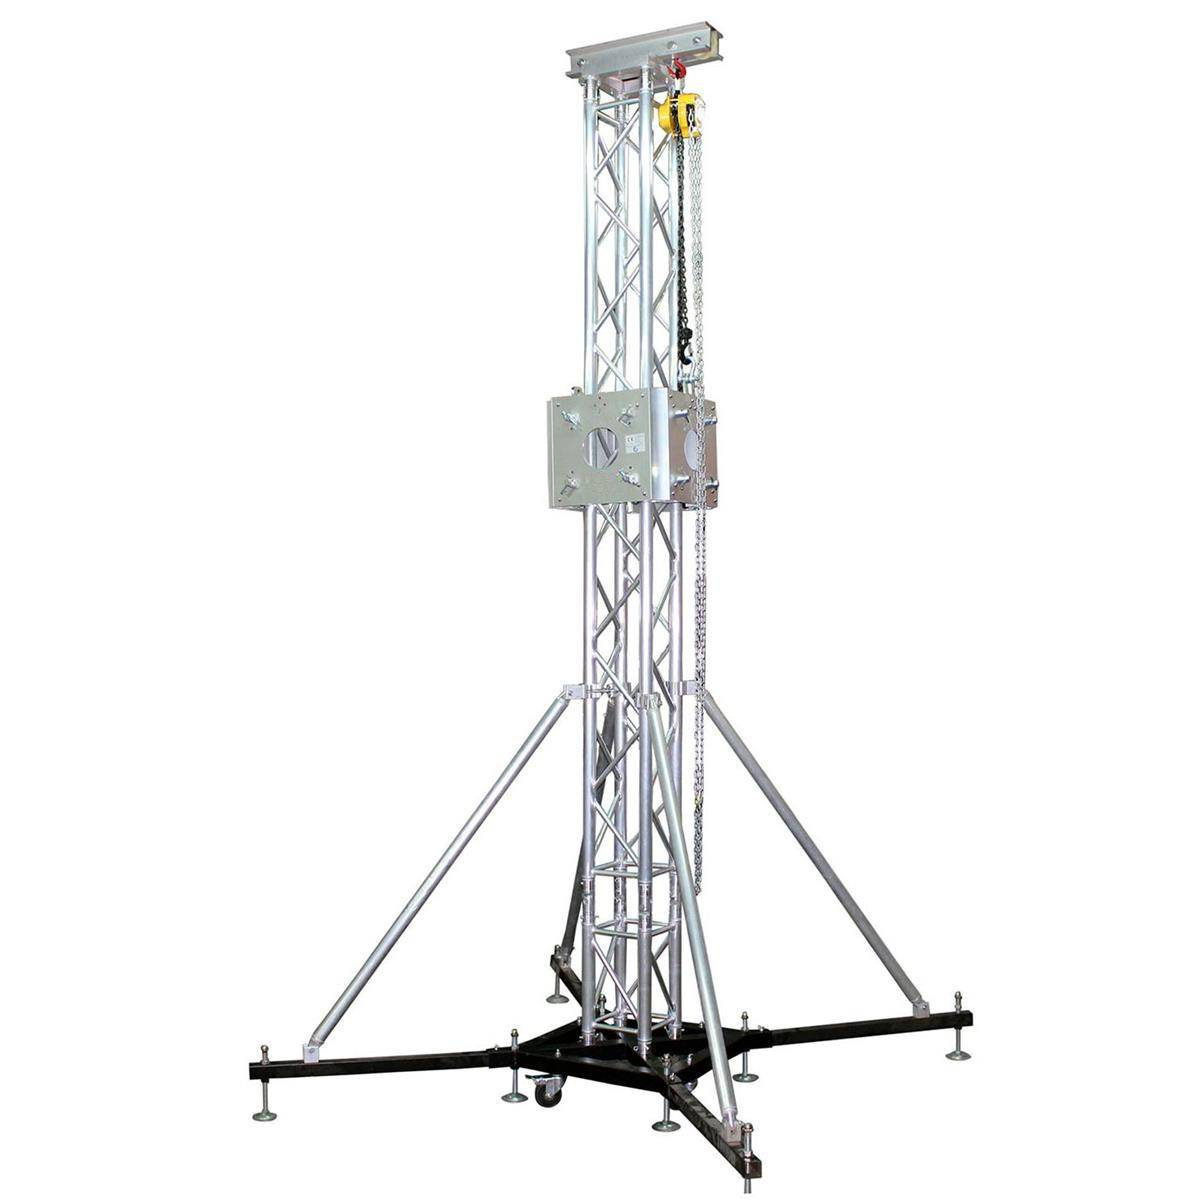 Auvi Truss Tower Stage Roofing System